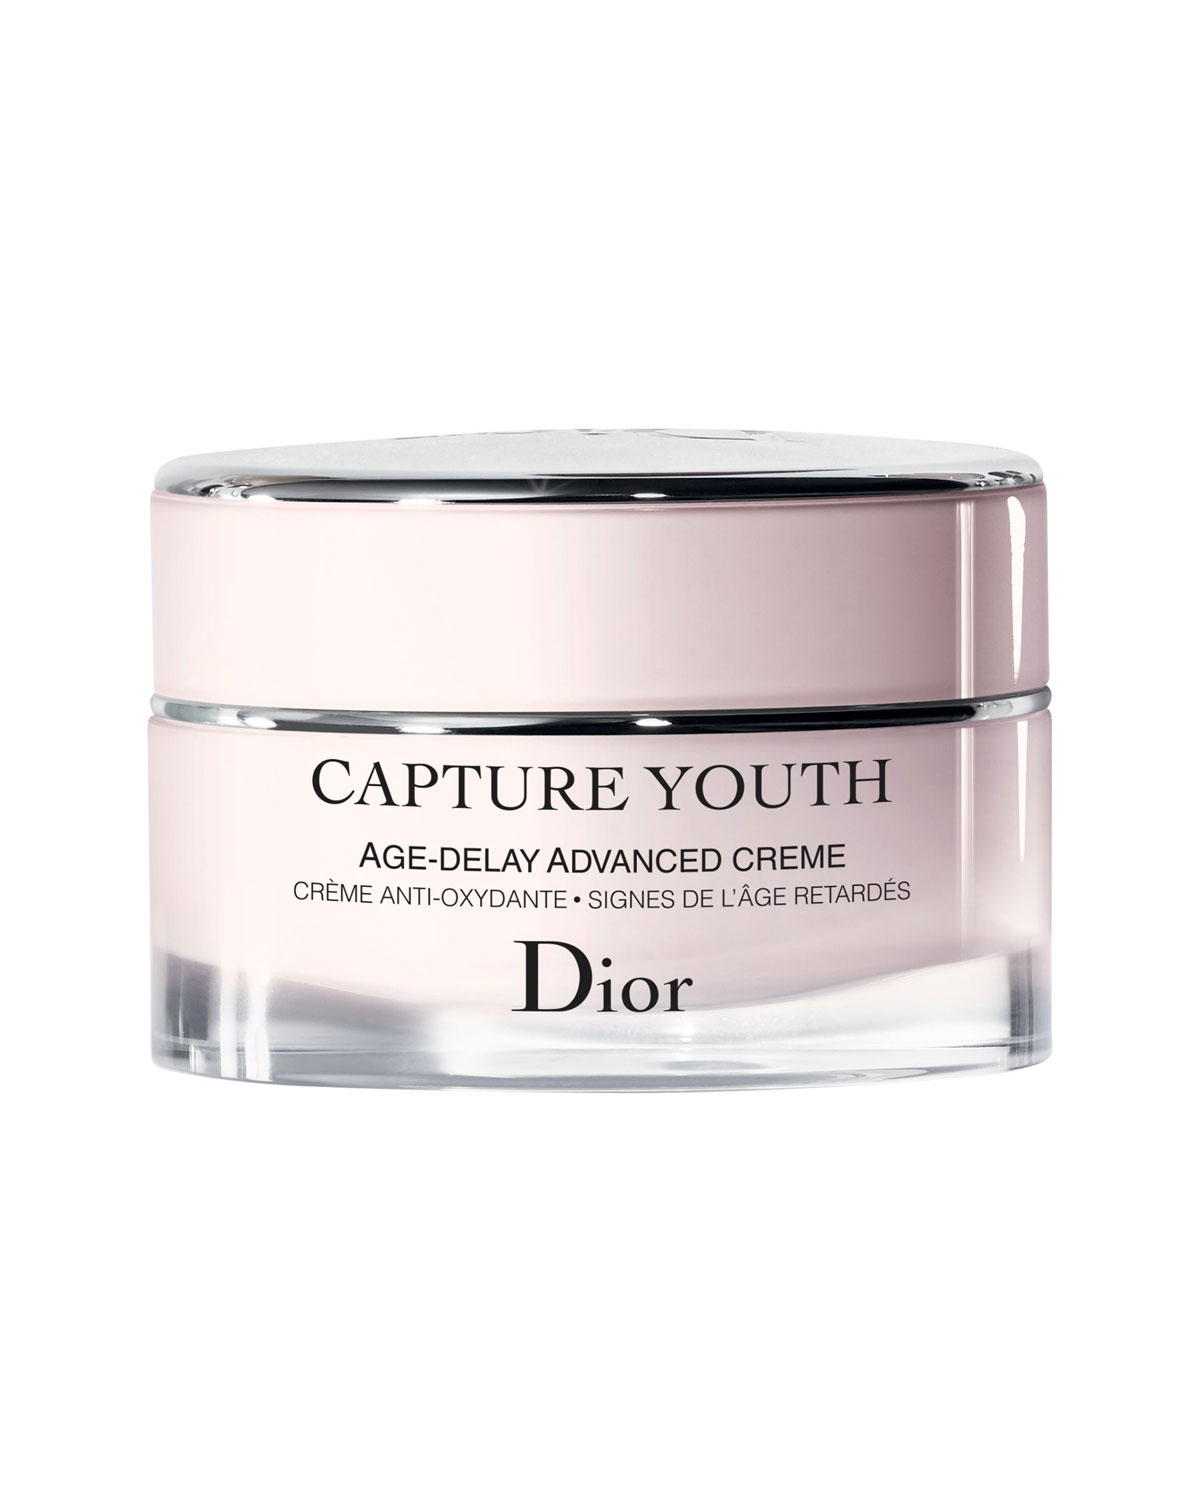 Dior 1.7 oz. Capture Youth Age-Delay Advanced Creme